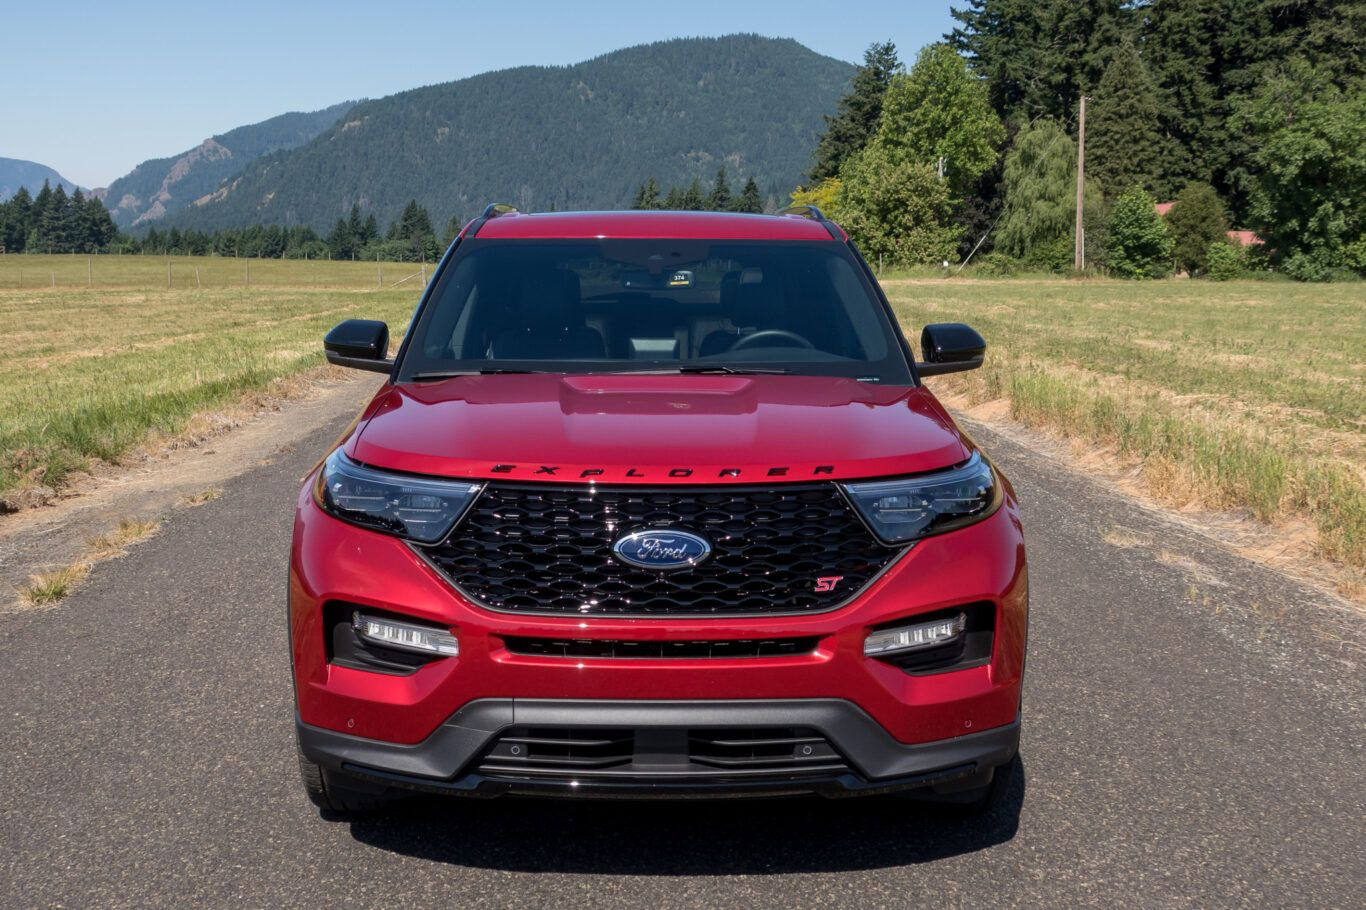 Ford has made some tactical changes to its midsize